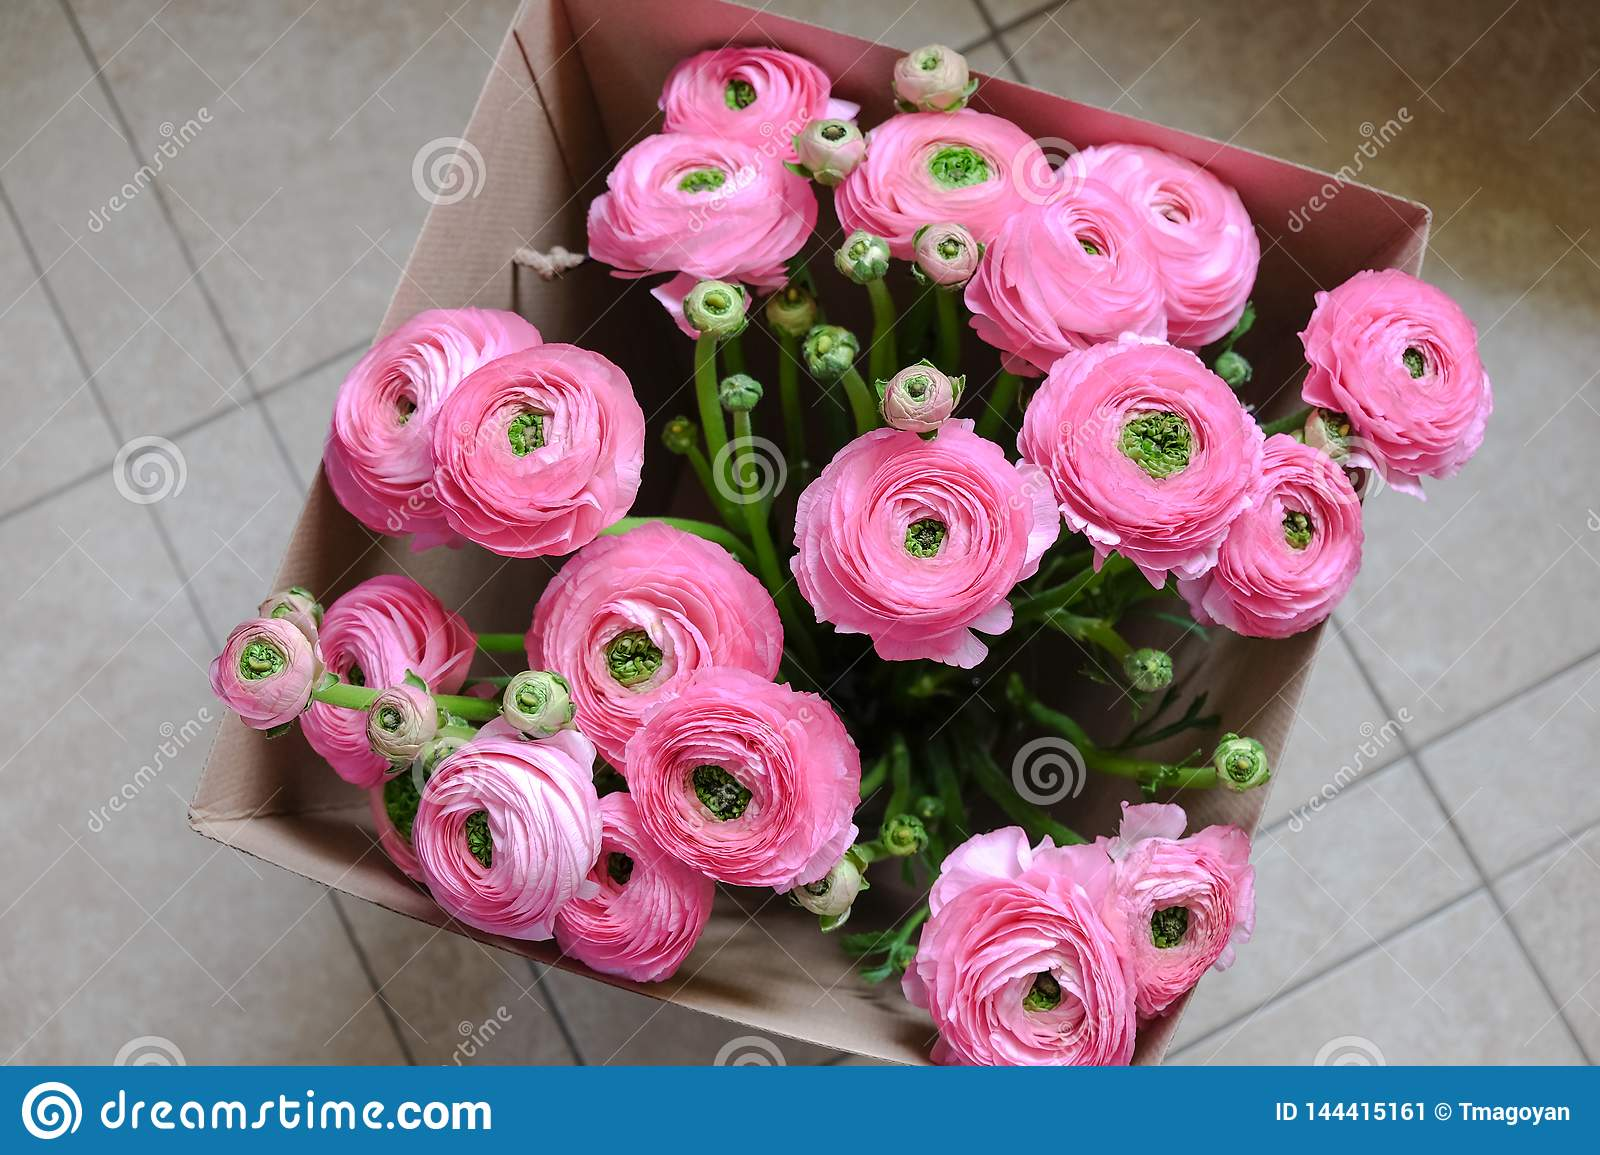 Pink Ranunculus bouquet in a cardboard box on the floor. Top view. For flower delivery, social media. Soft selective focus.